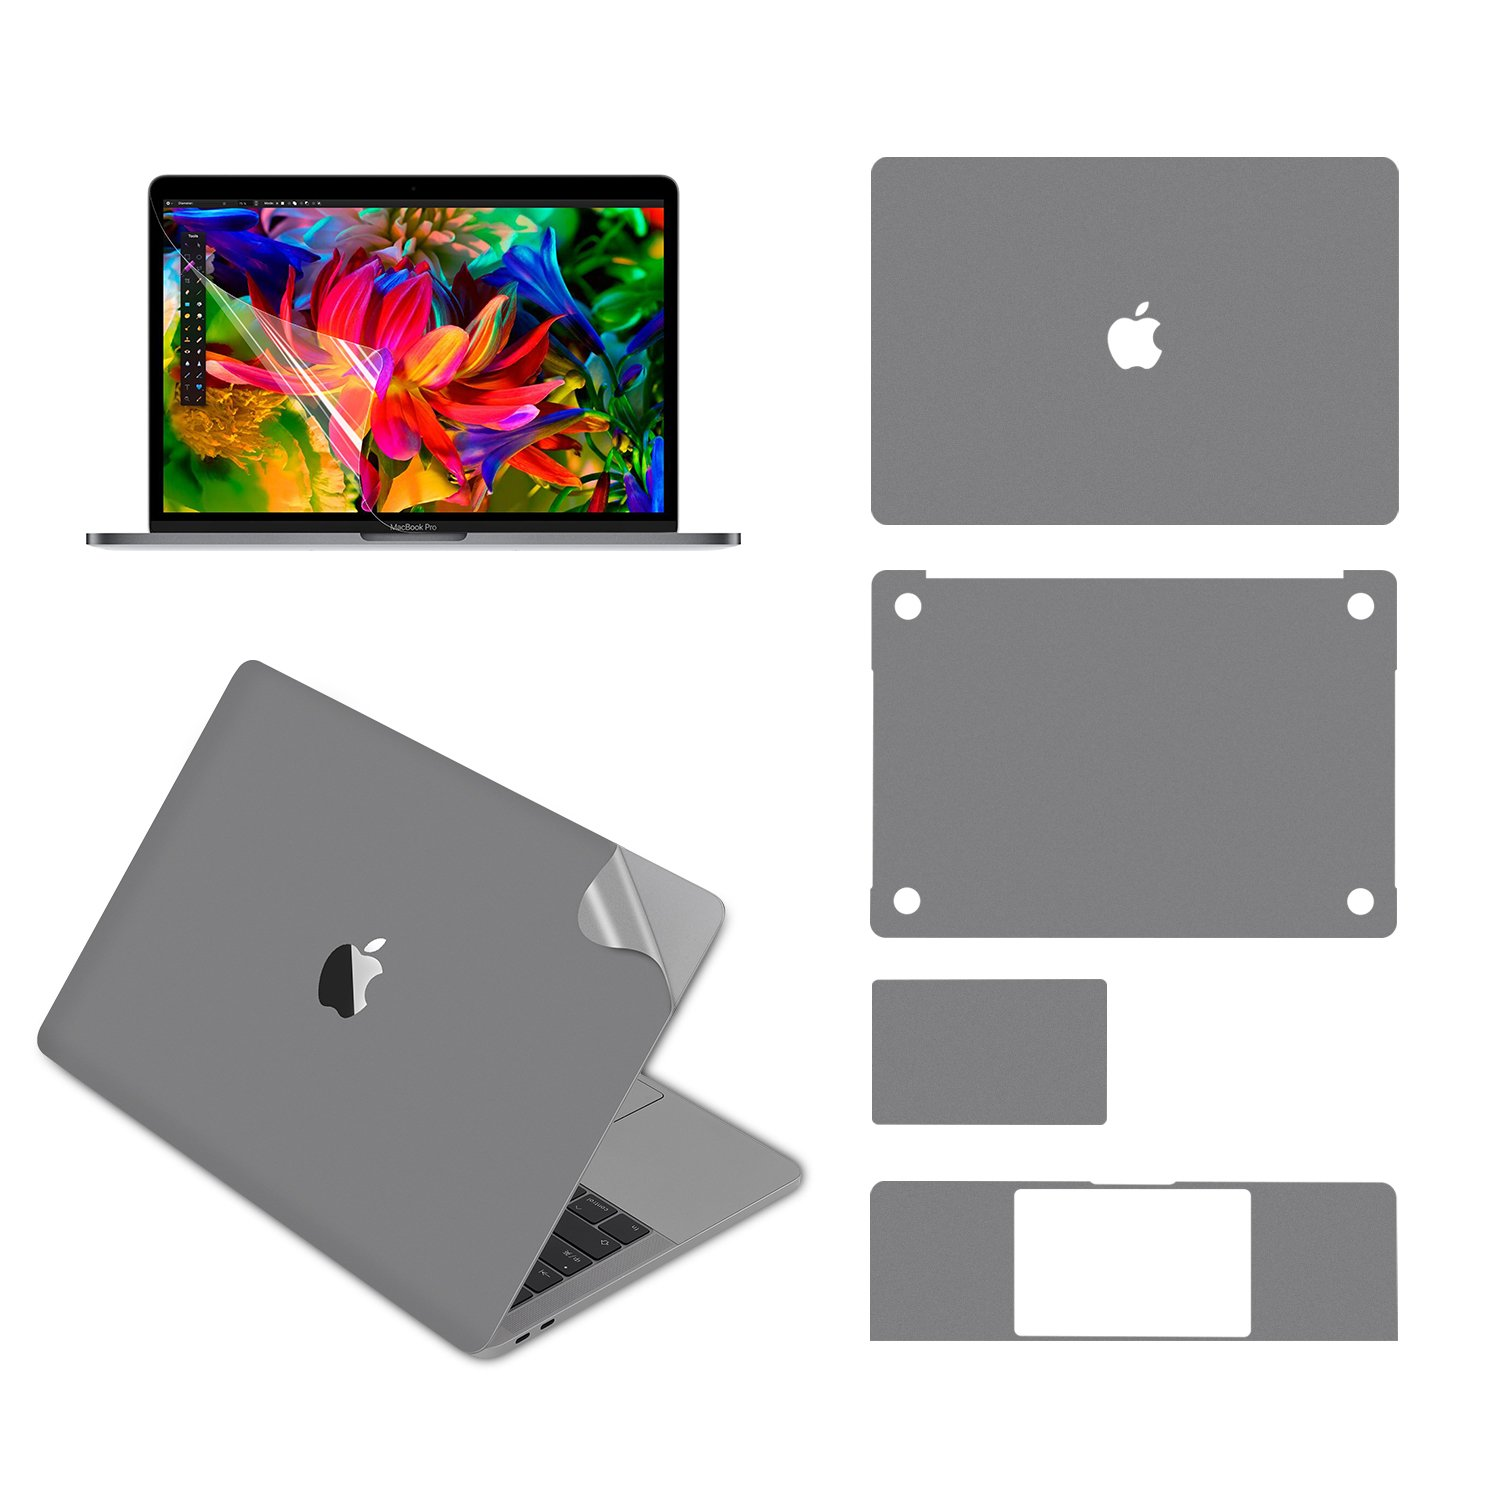 LENTION Full Body Stickers Compatible MacBook Pro (13-inch, 2016-2018, with Thunderbolt 3 ports), Full-Cover Protective Vinyl Decal Skin (Top/Bottom/Touchpad/Palm Rest) + Screen Protector (Space Gray)